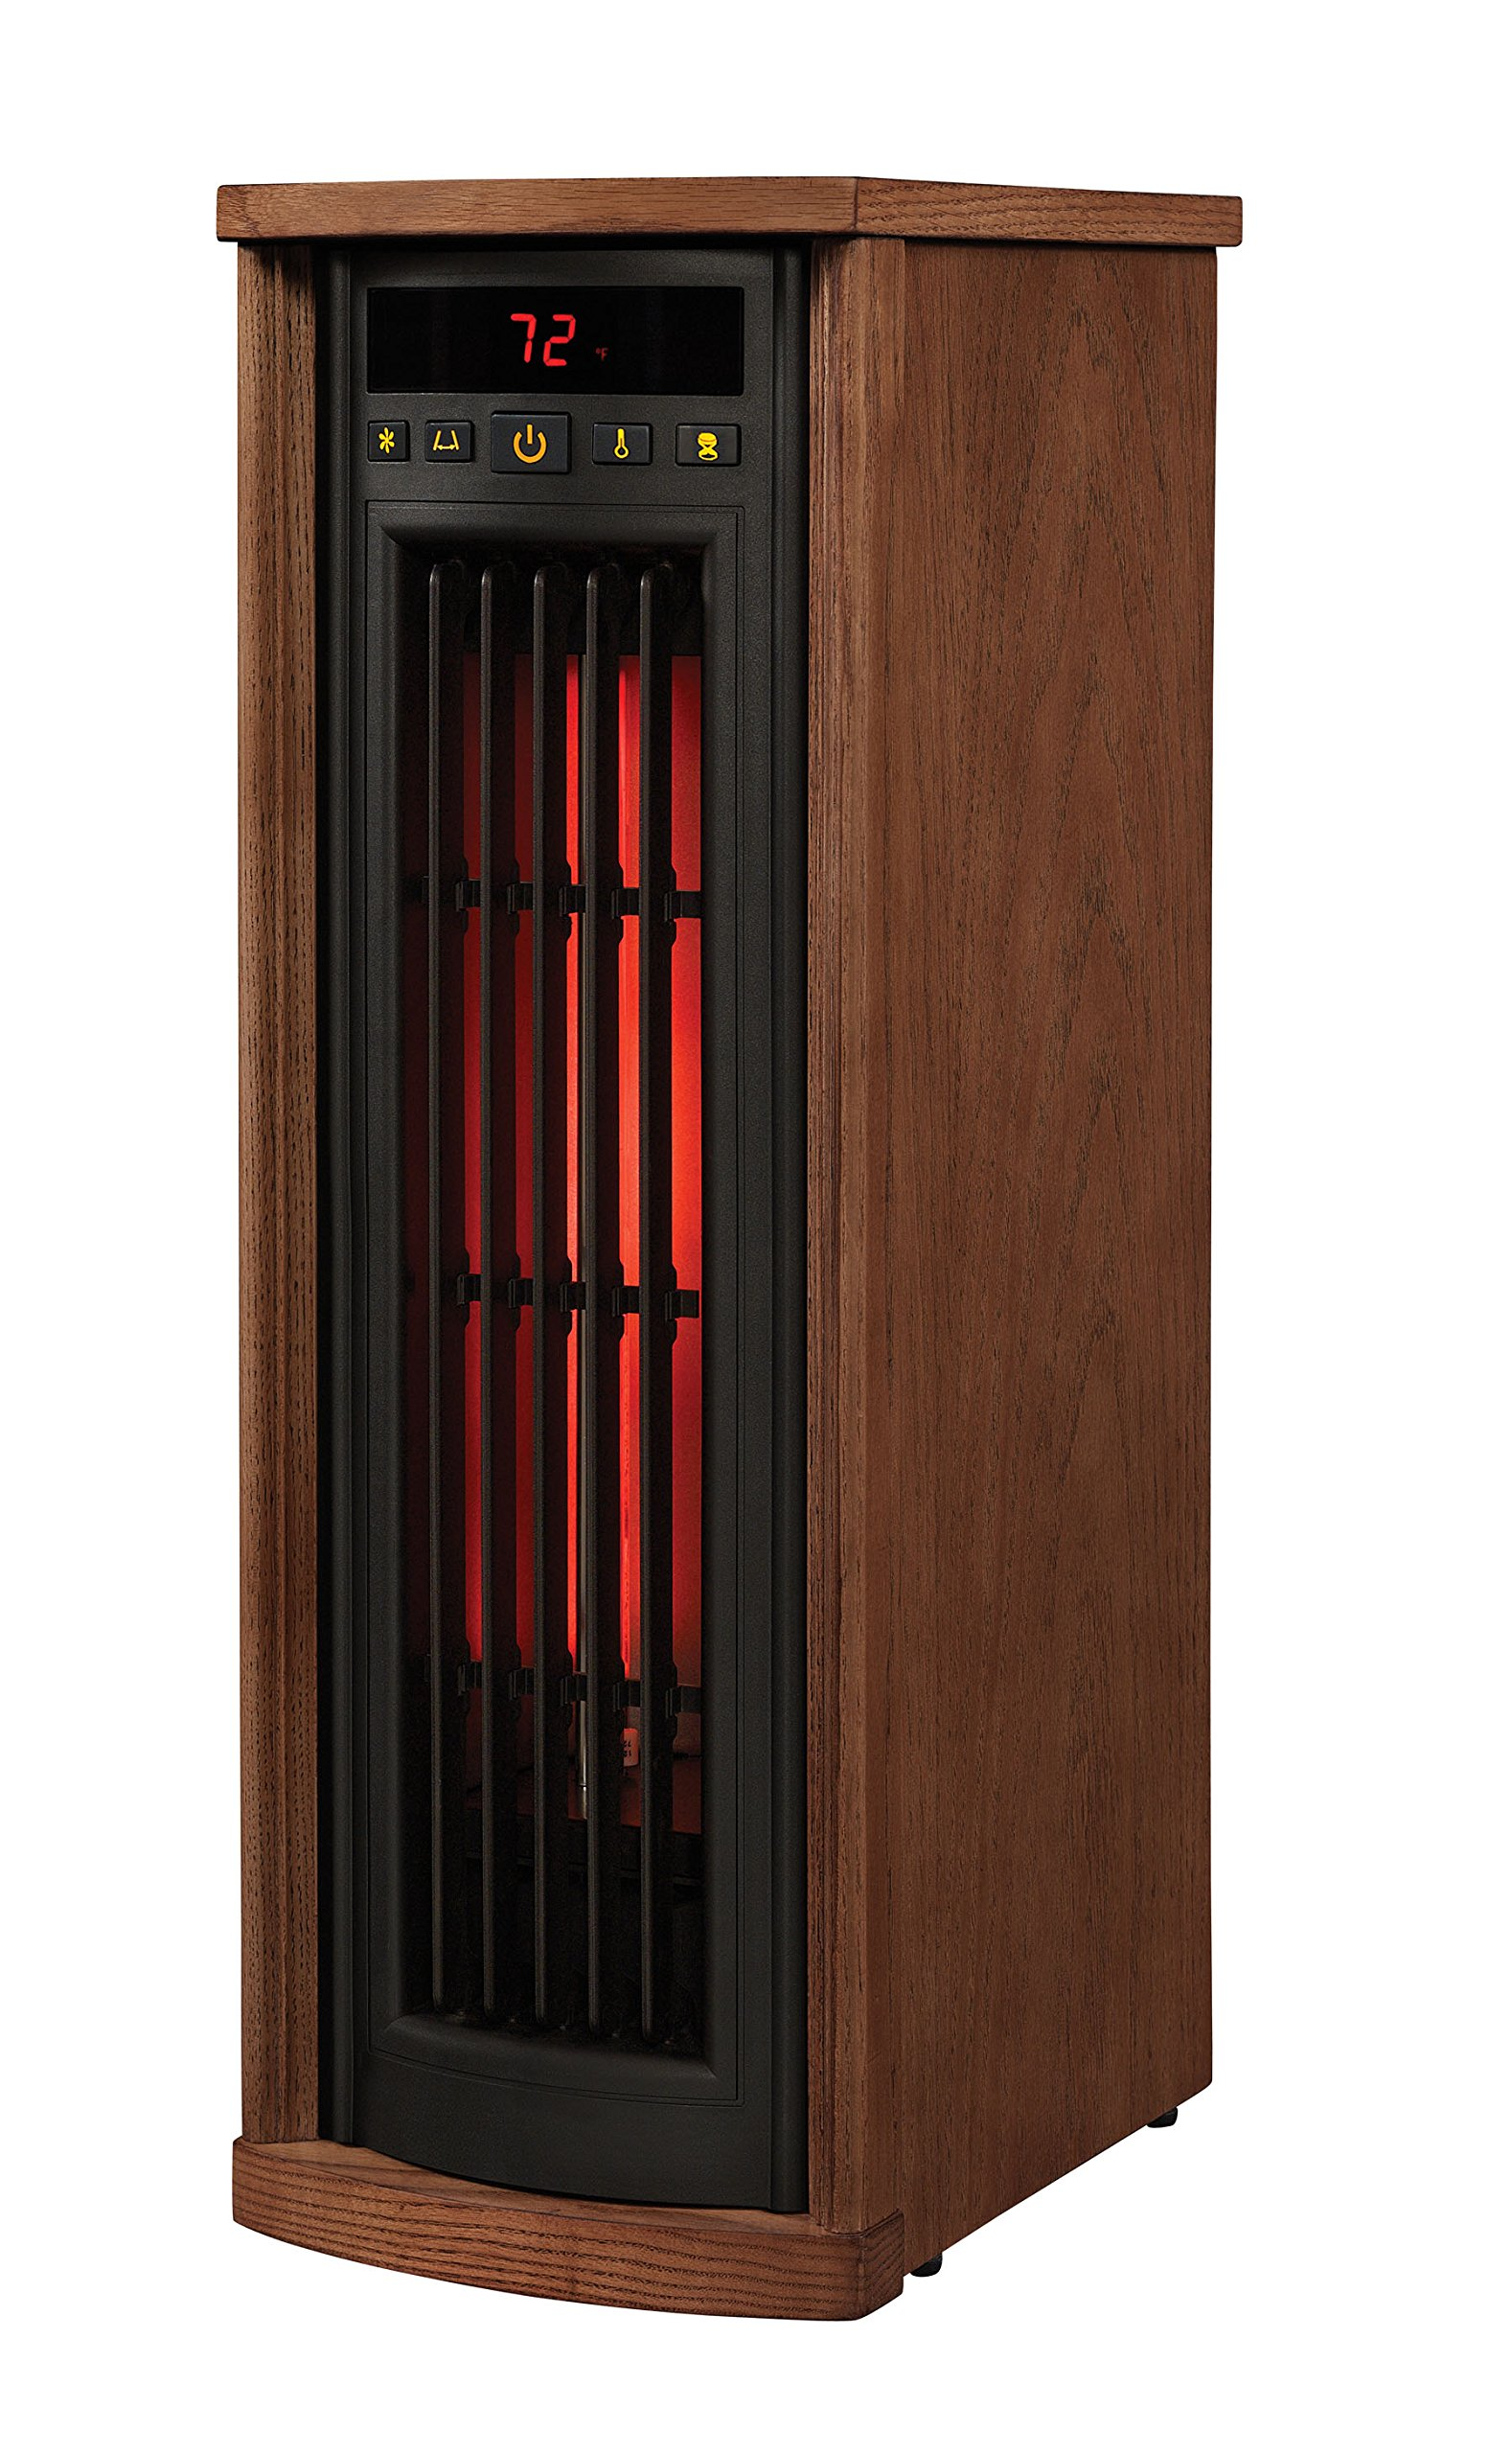 Duraflame 5HM8000-O142 Portable Electric Infrared Quartz Oscillating Tower Heater, Oak by Duraflame (Image #3)